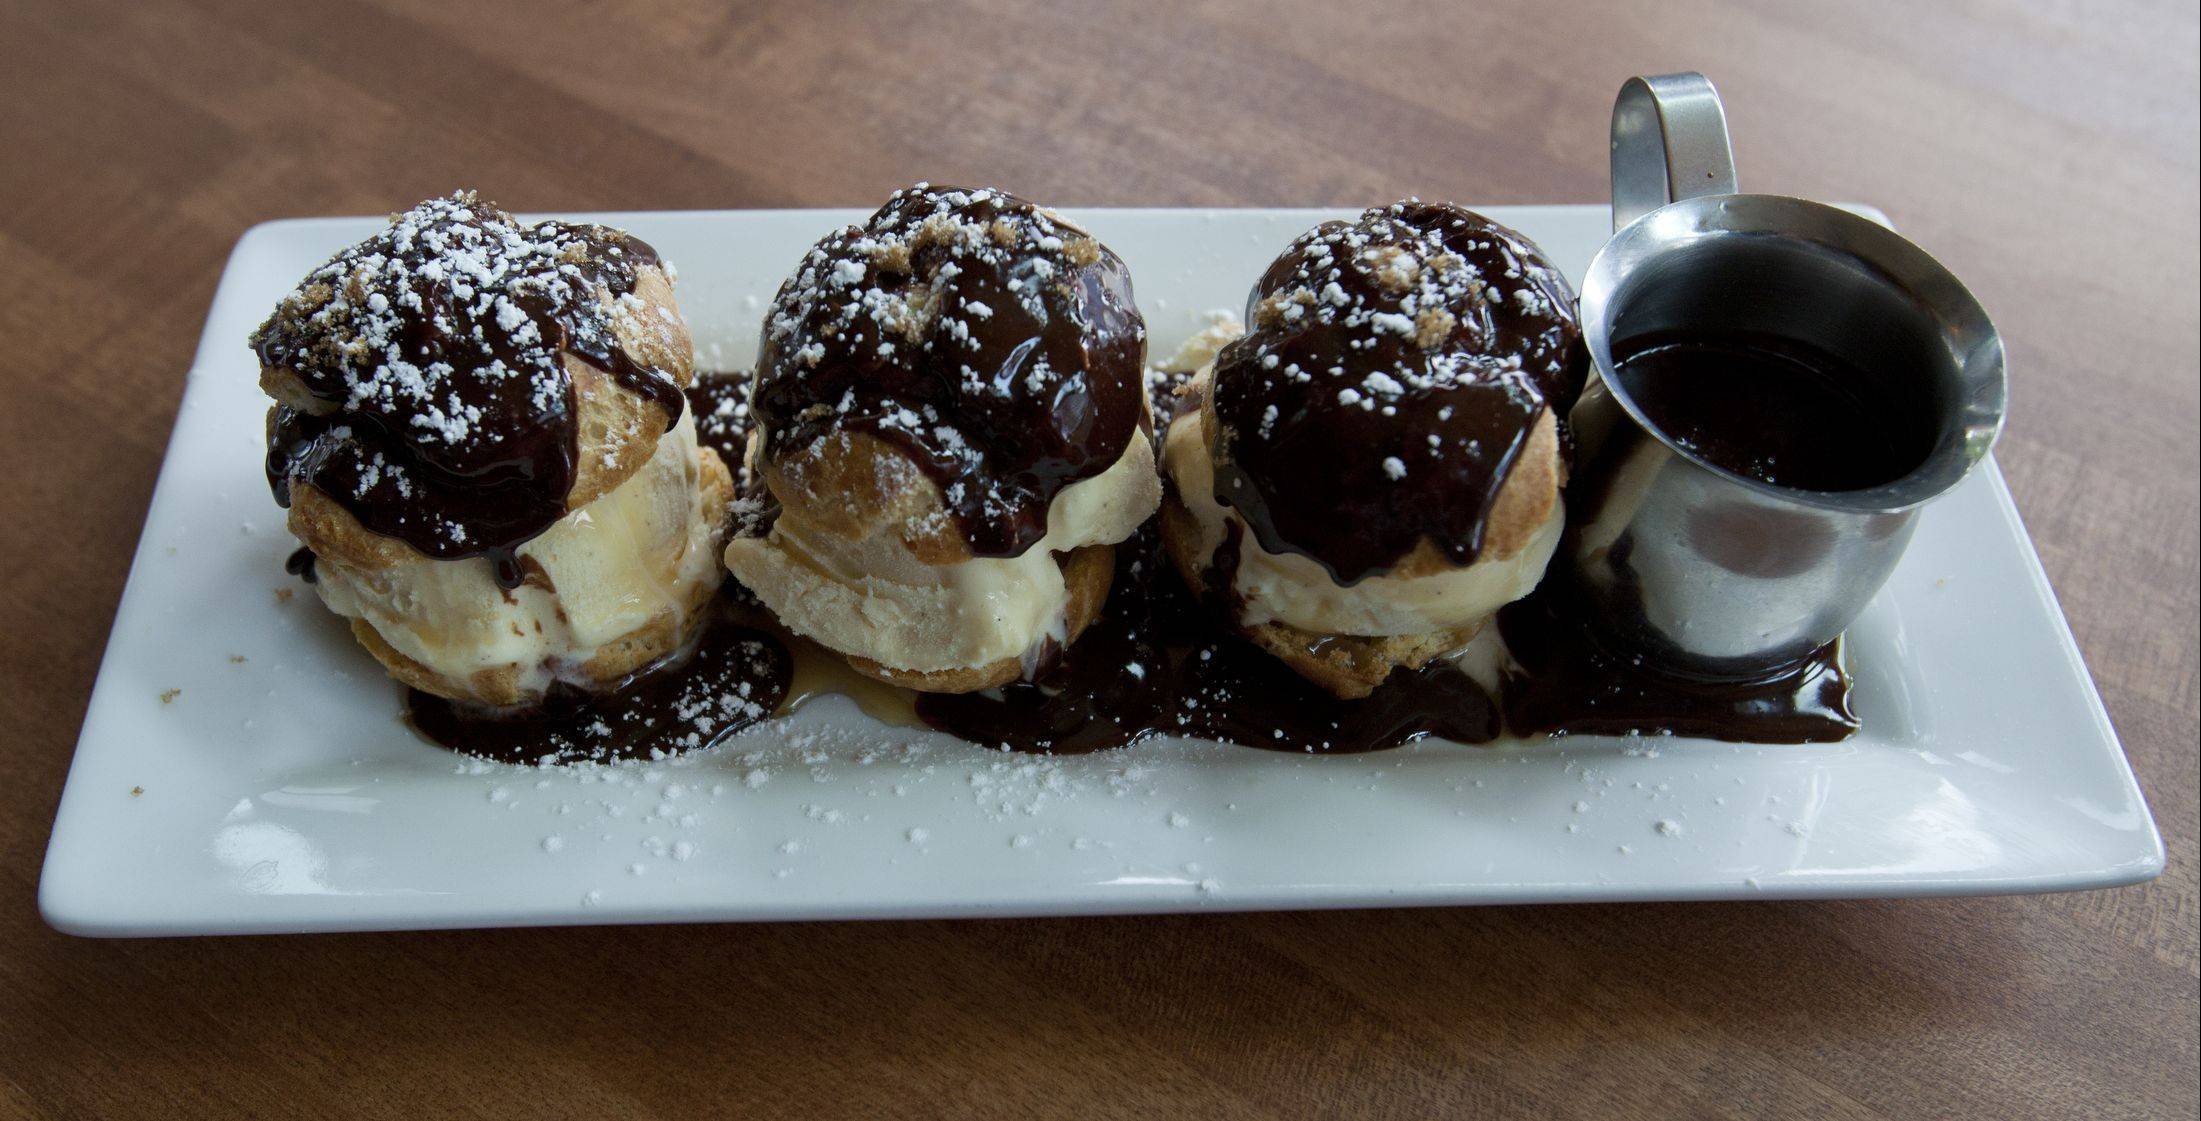 Bourbon Ice Cream Sliders are a decadent way to end a meal at Lincoln Whiskey Kitchen in Schaumburg.